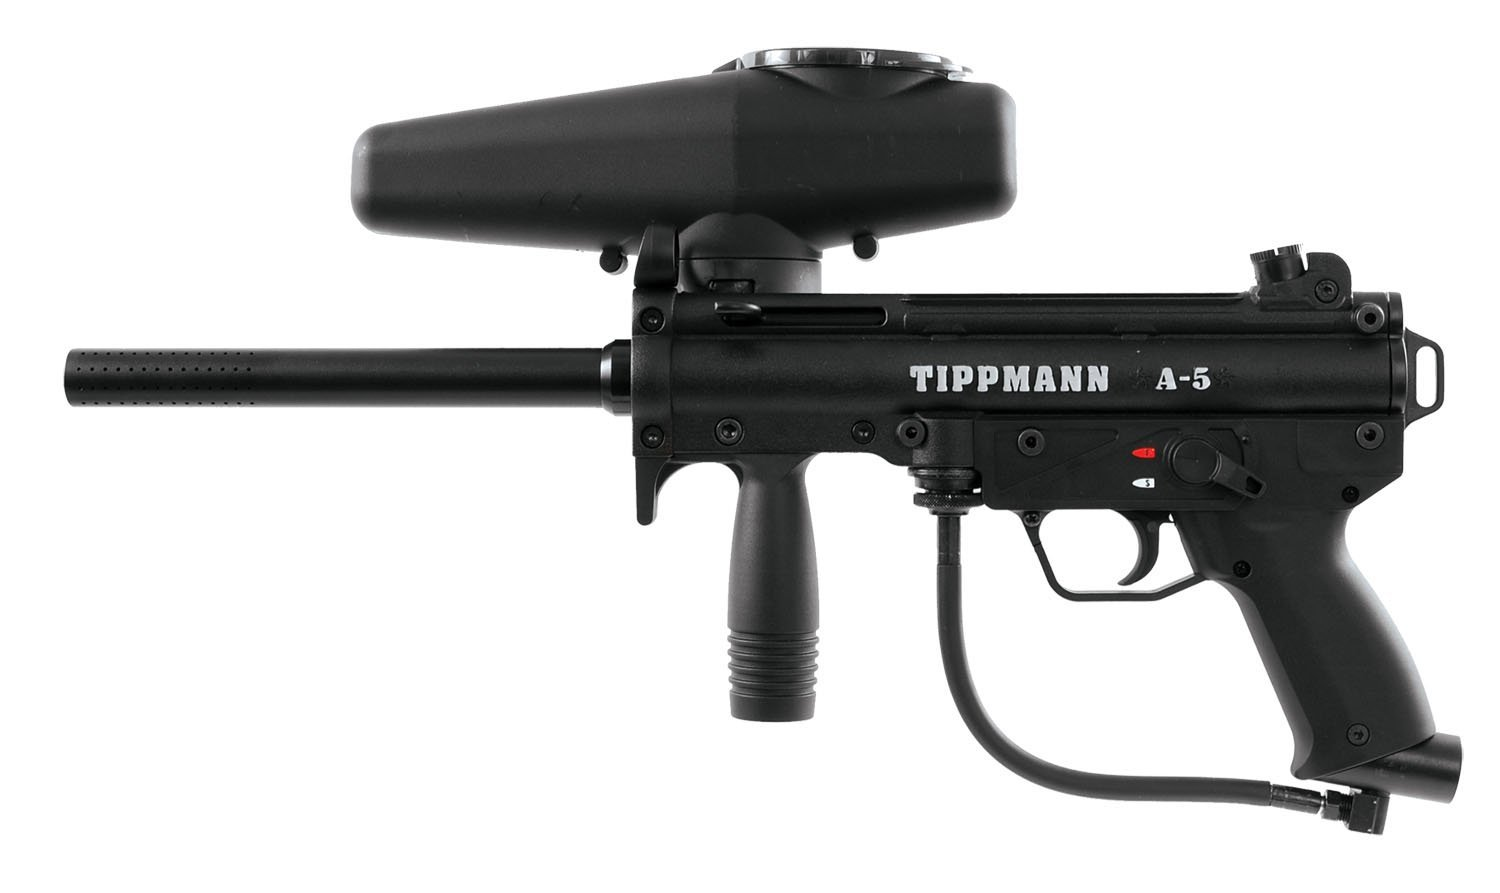 Tippmann A-5 Paintball Marker Gun Review